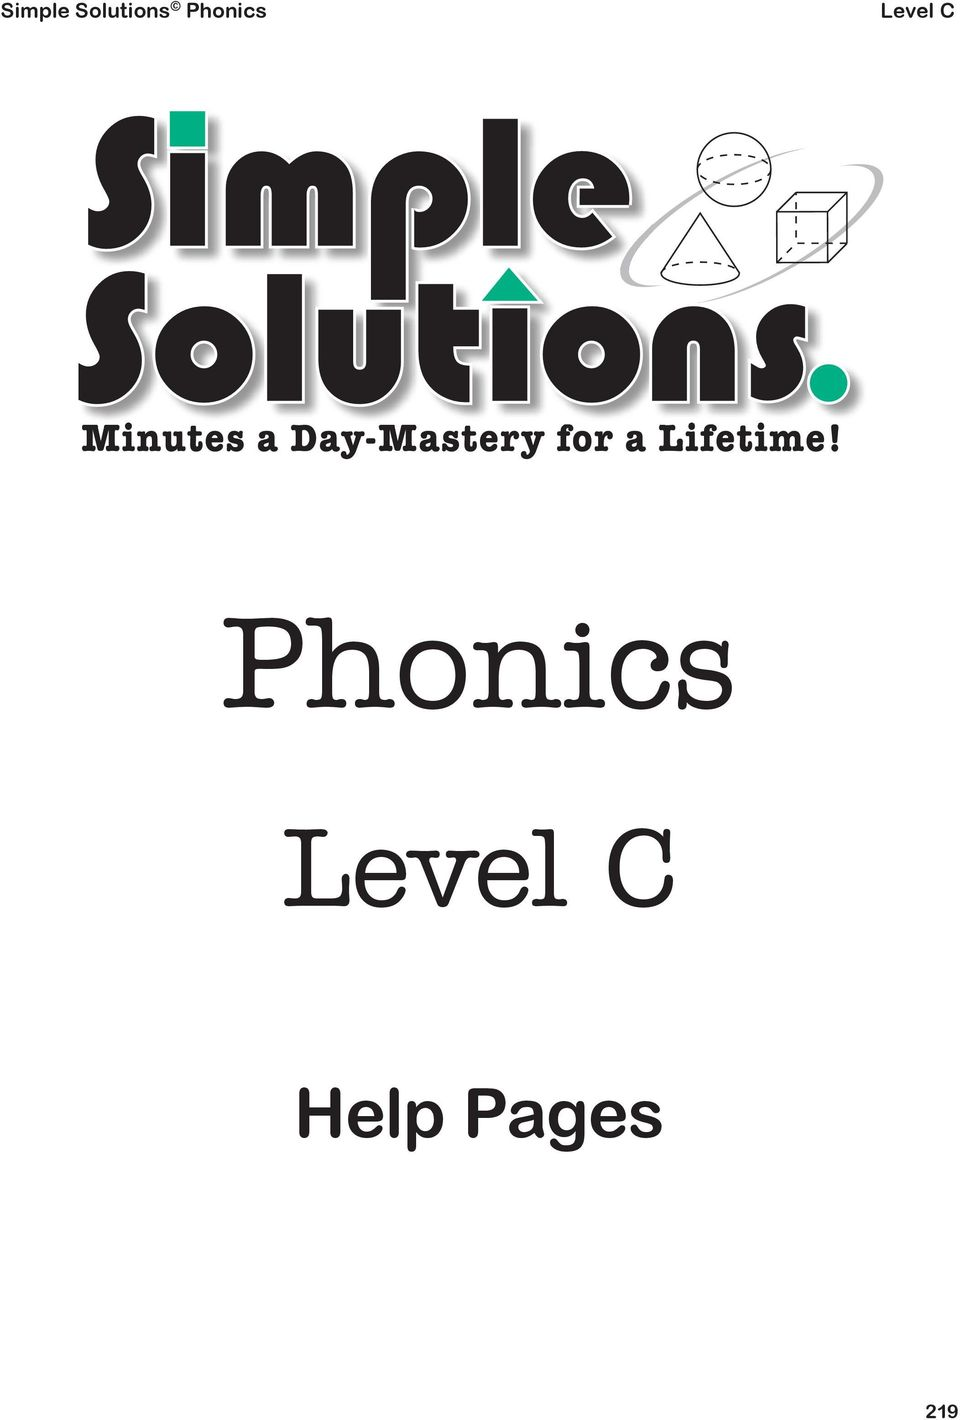 Simple Solutions Phonics  Phonics  Level C  Help Pages - PDF